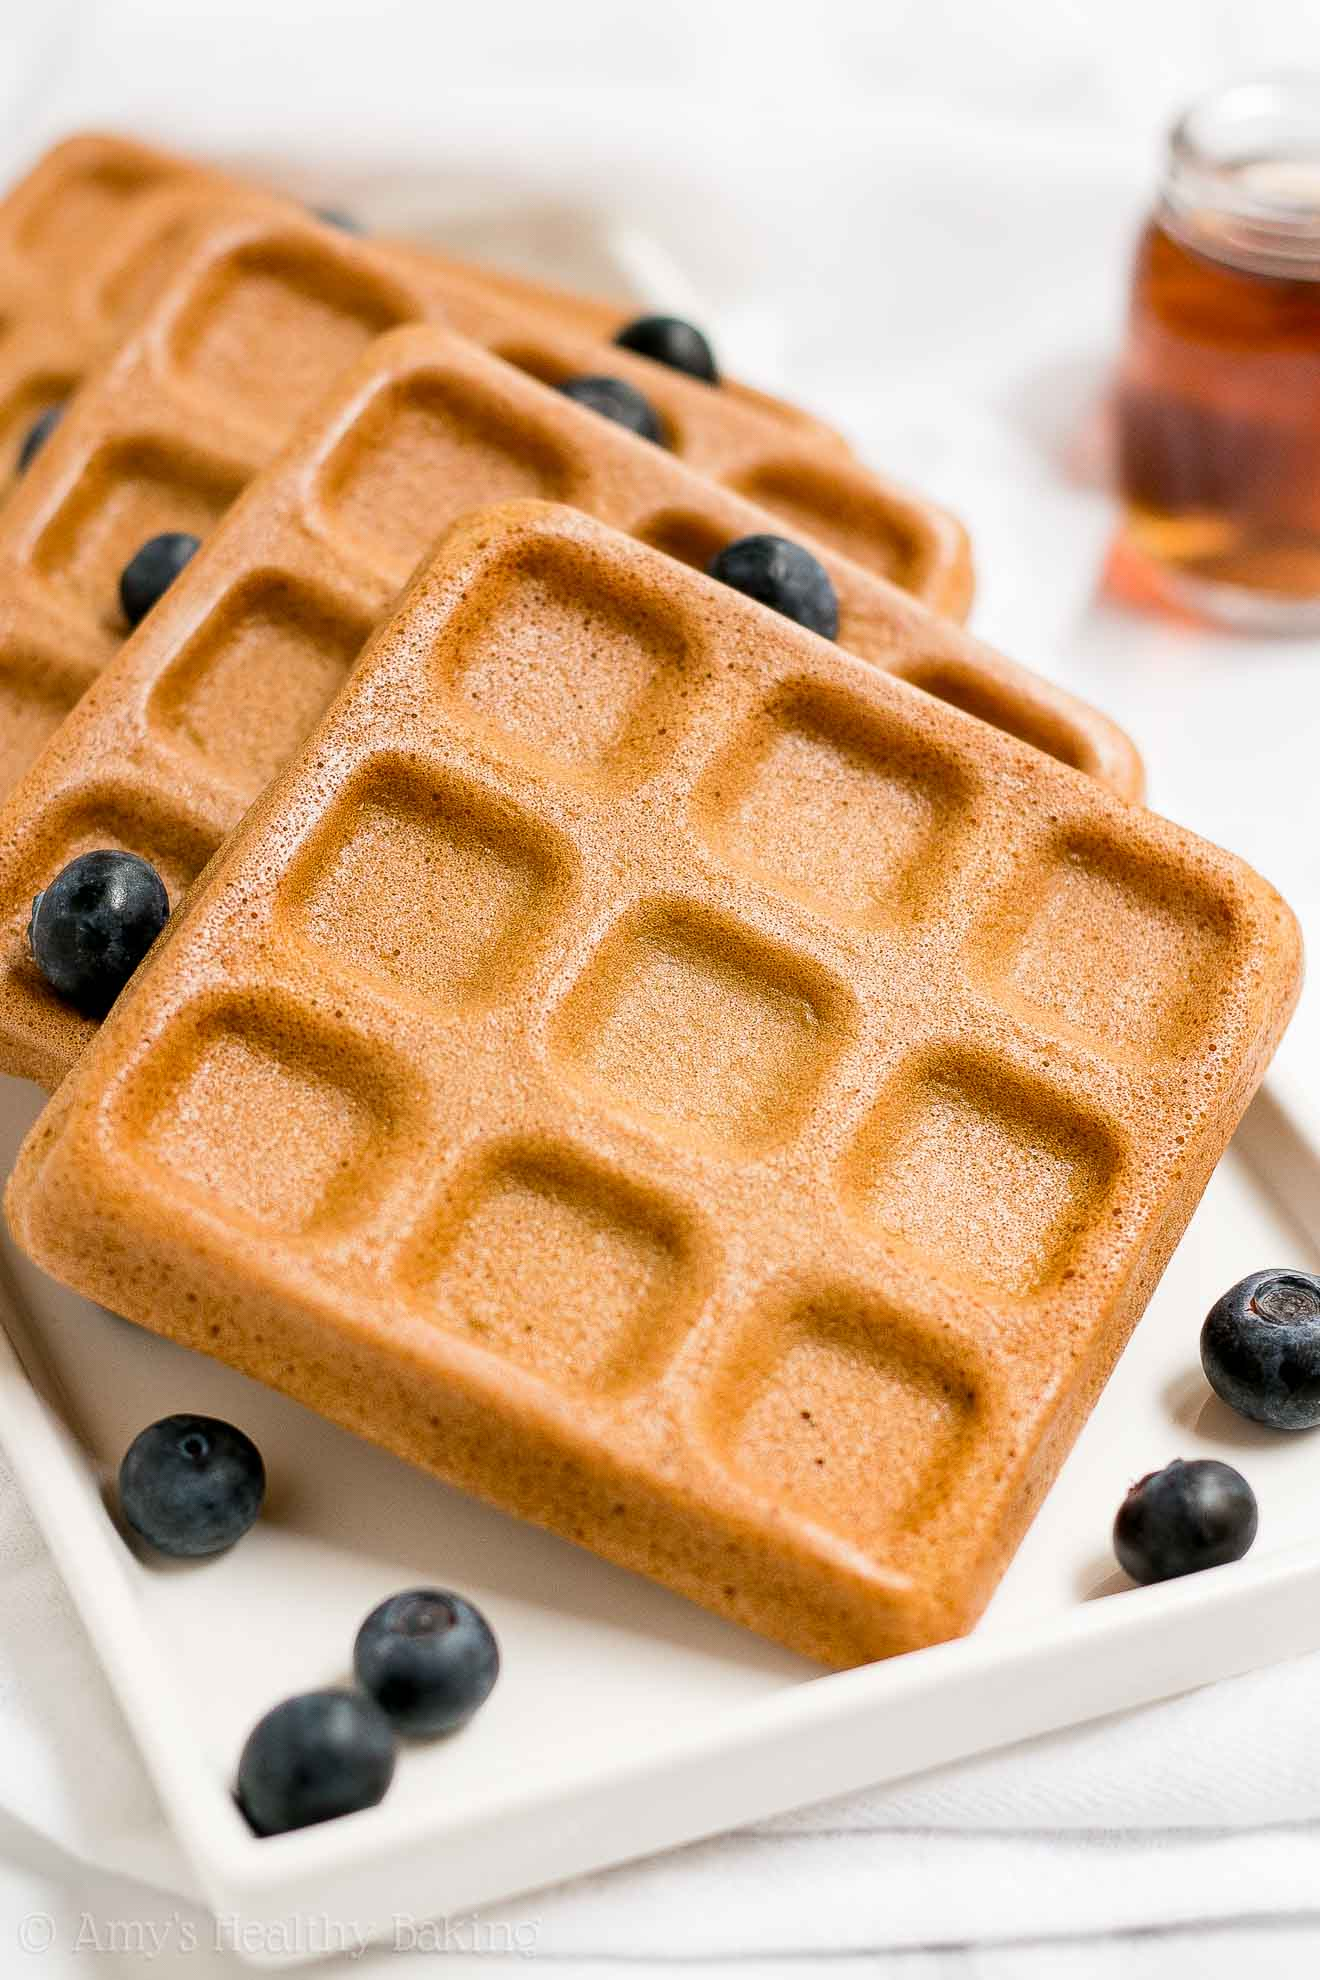 the ultimate healthy baked buttermilk waffles | amy's healthy baking